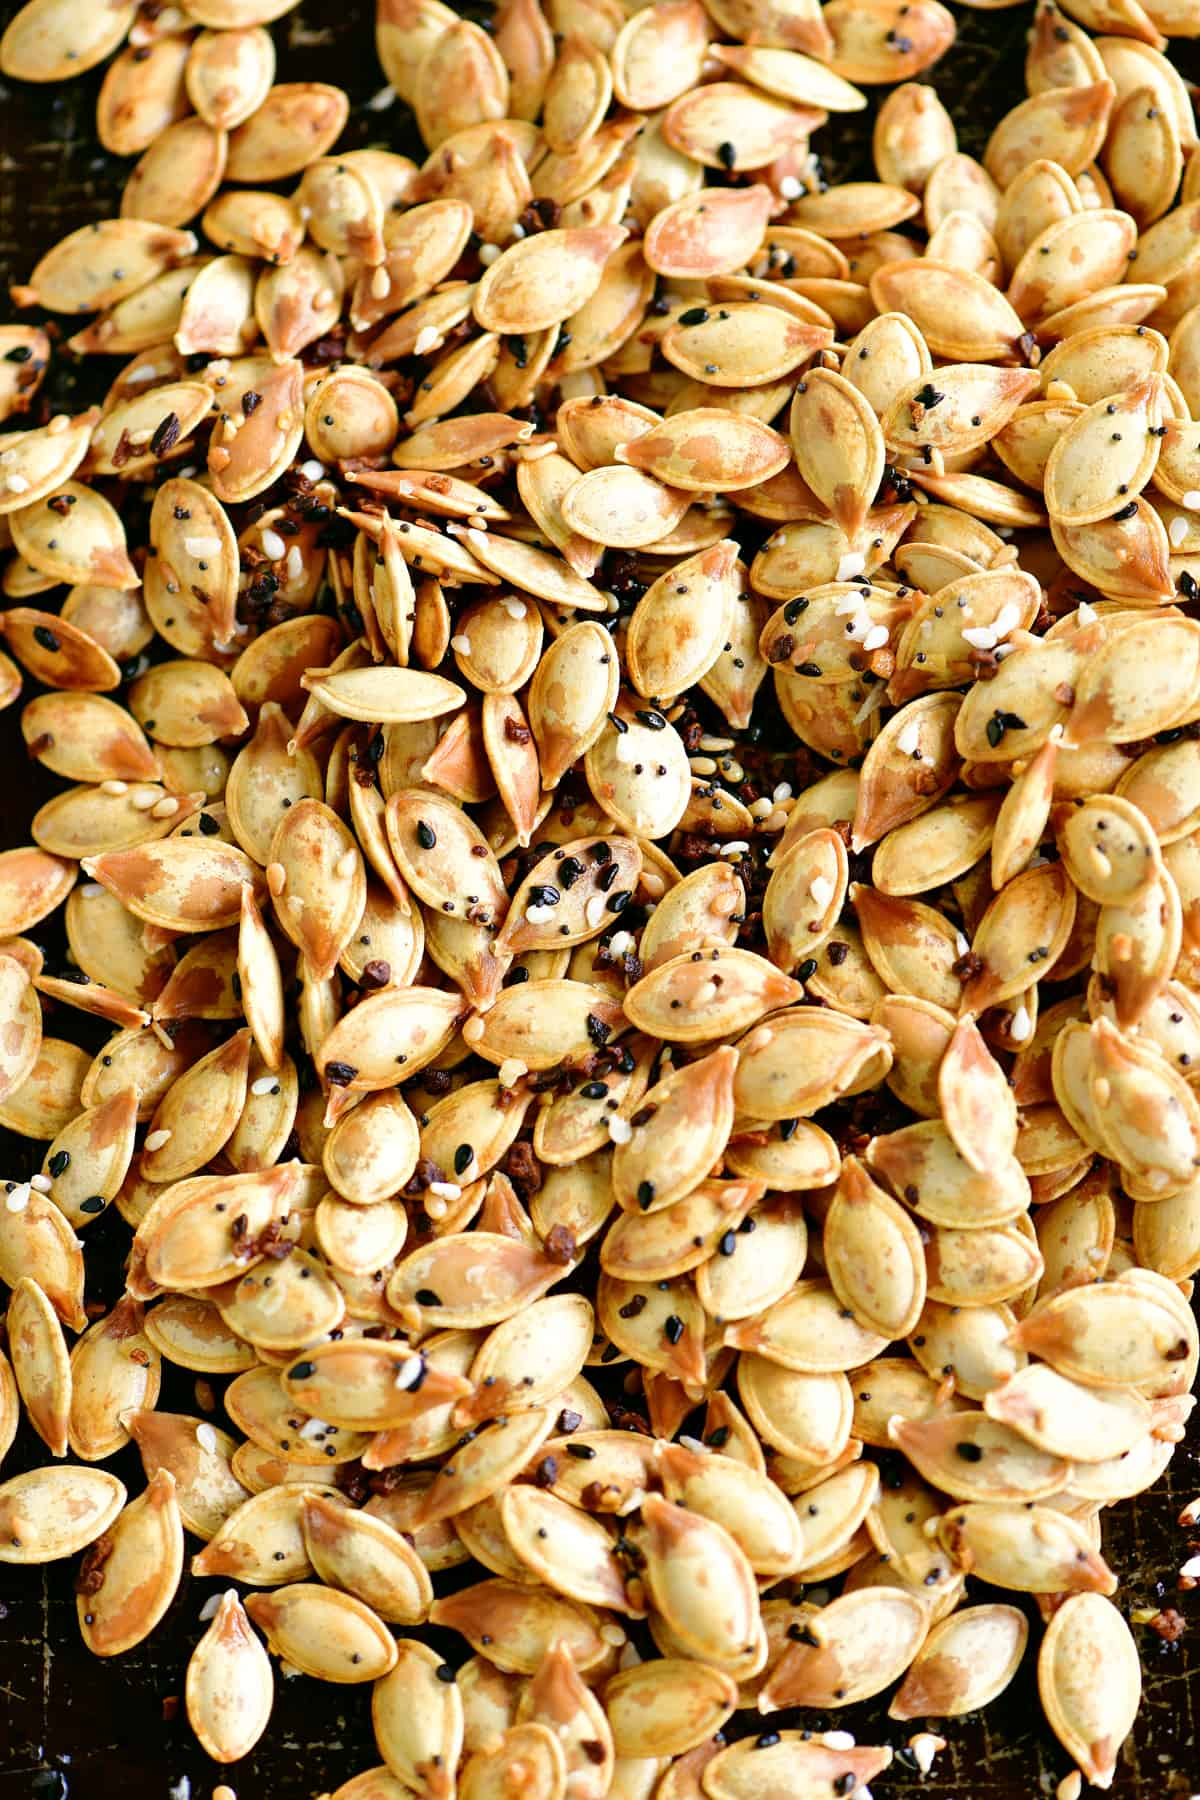 a topdown close-up view of the pumpkin seeds on a pan